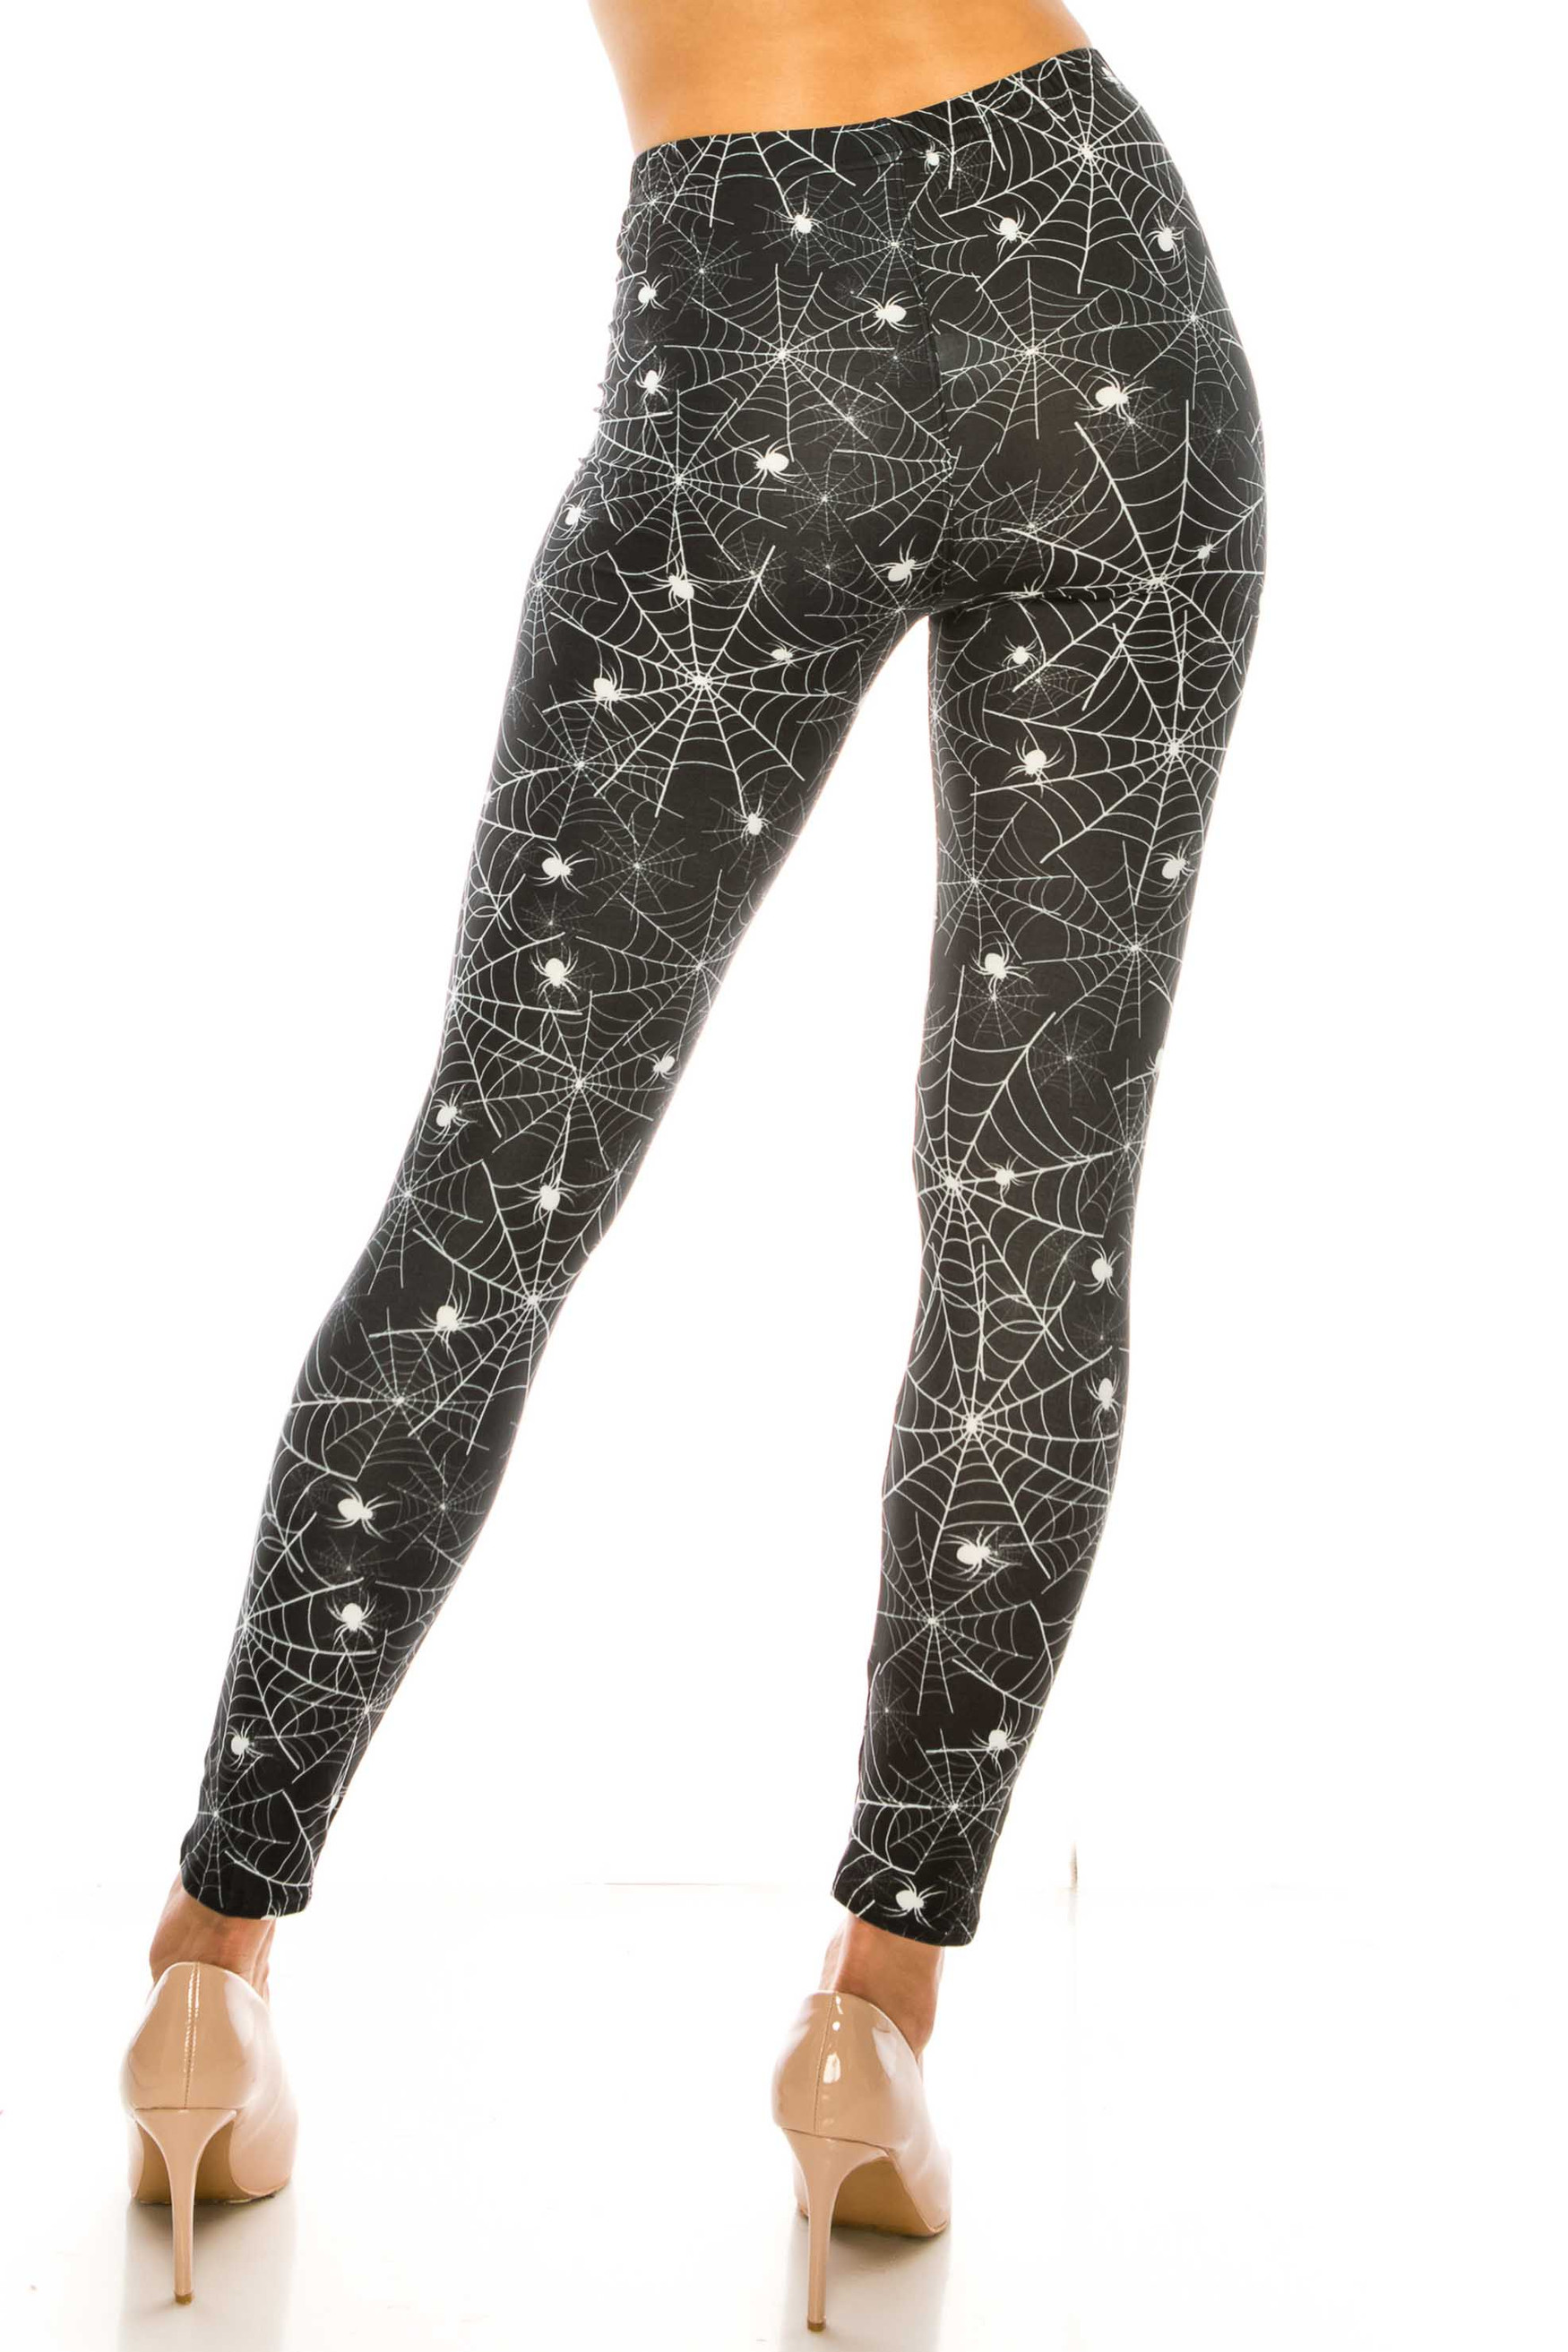 Creamy Soft Spiders and Spiderwebs Kids Leggings - USA Fashion™